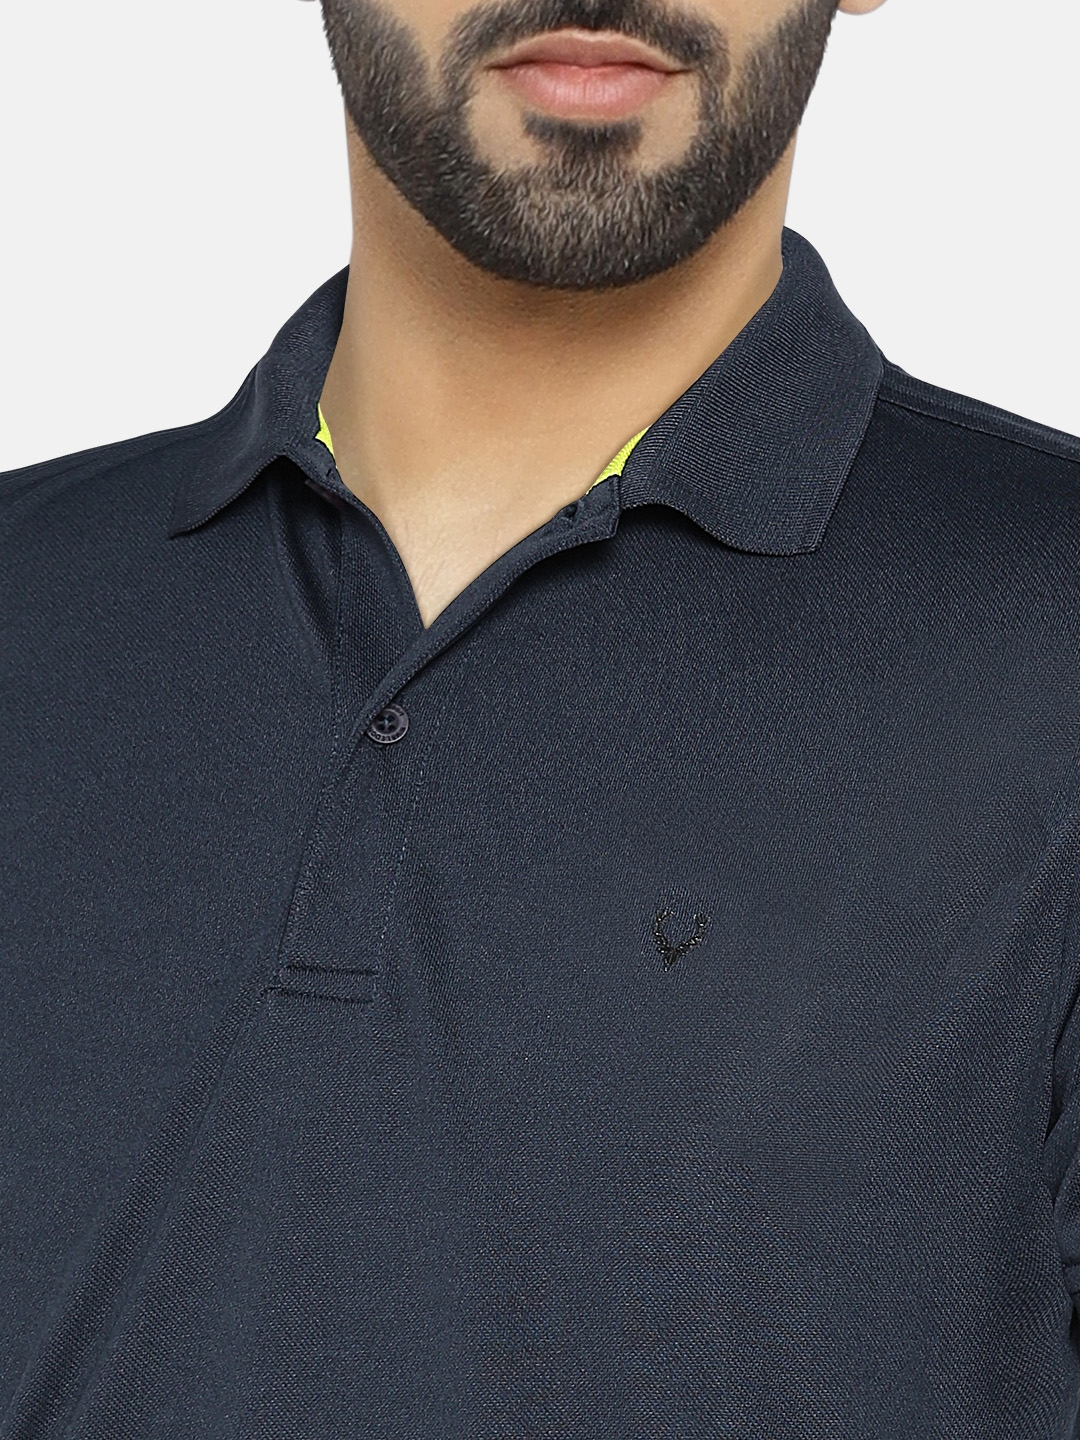 Buy Solly Sport Men Navy Solid Wimbledon Polo Collar T Shirt